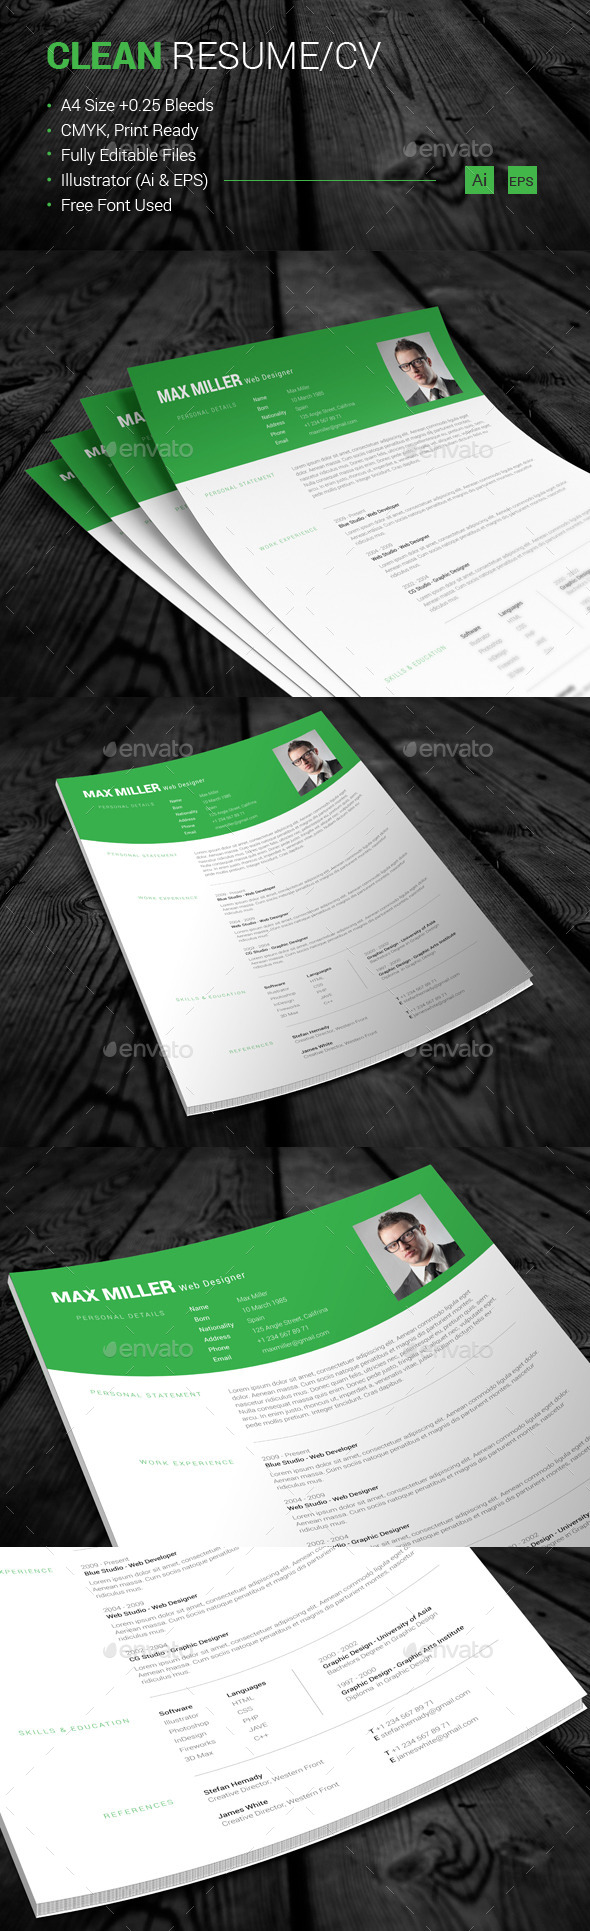 GraphicRiver Clean Resume CV 10991532